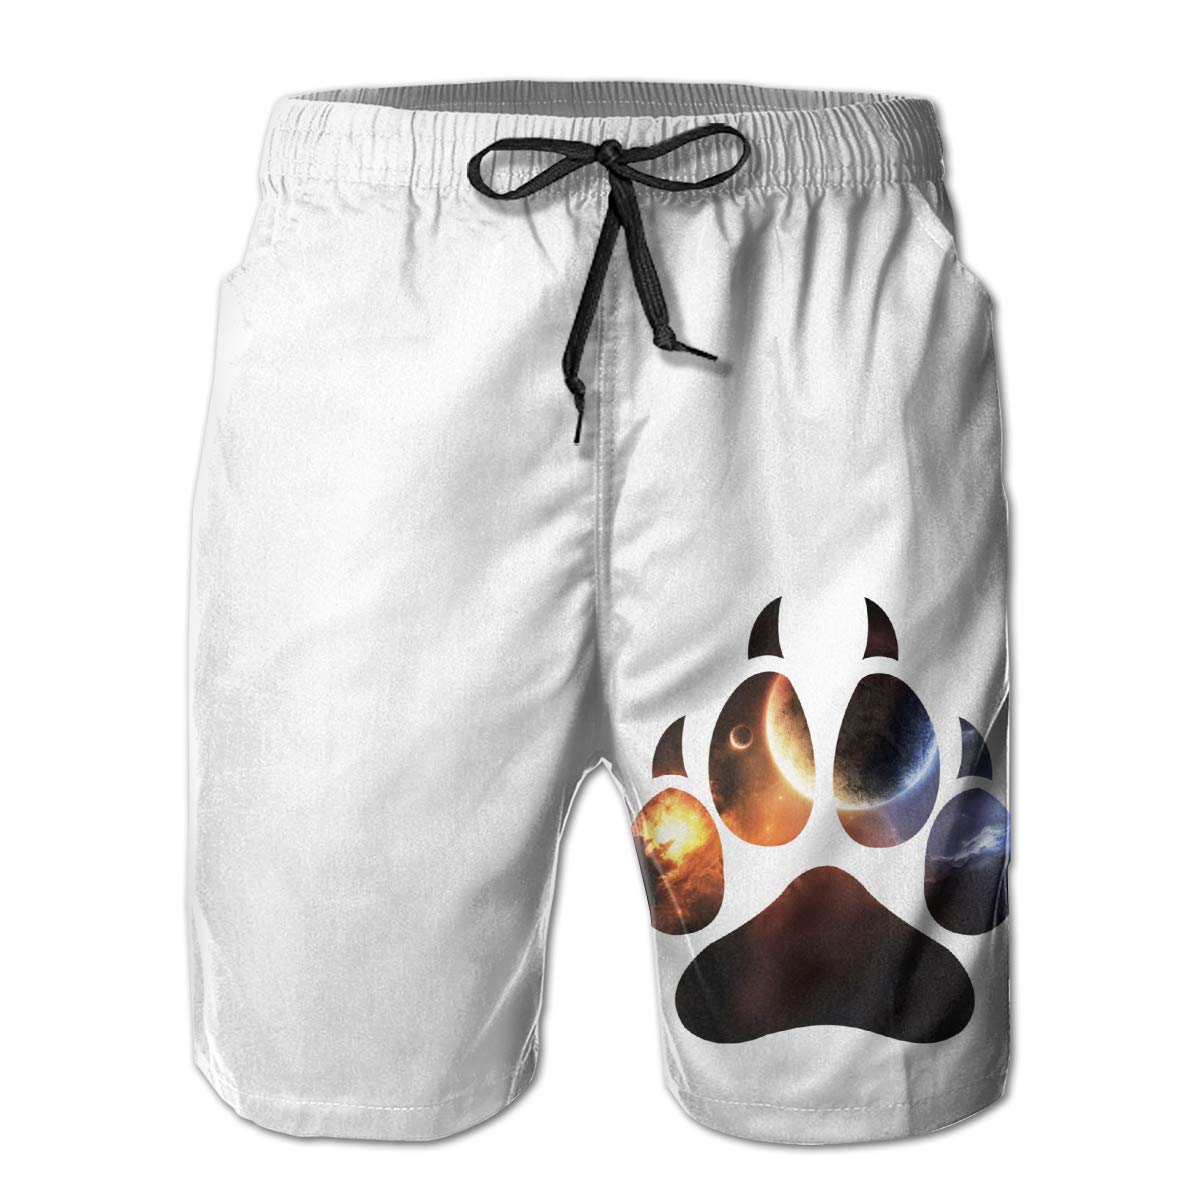 HZamora/_H Men Trippy Space Wolf Paw Summer Breathable Quick-Drying Swim Trunks Beach Shorts Cargo Shorts XL